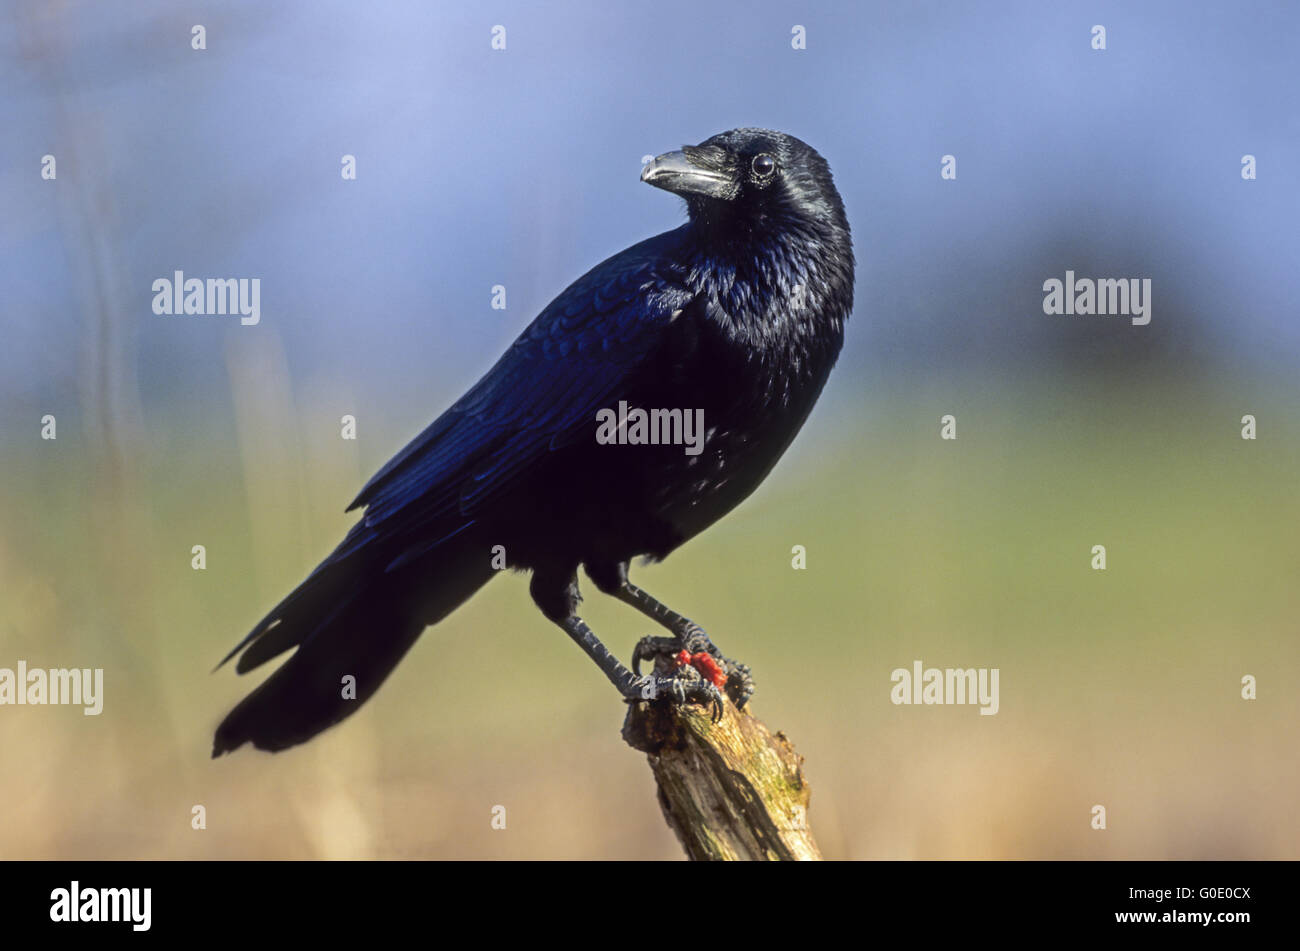 Carrion Crow sit with a piece of meat on a branch - Stock Image